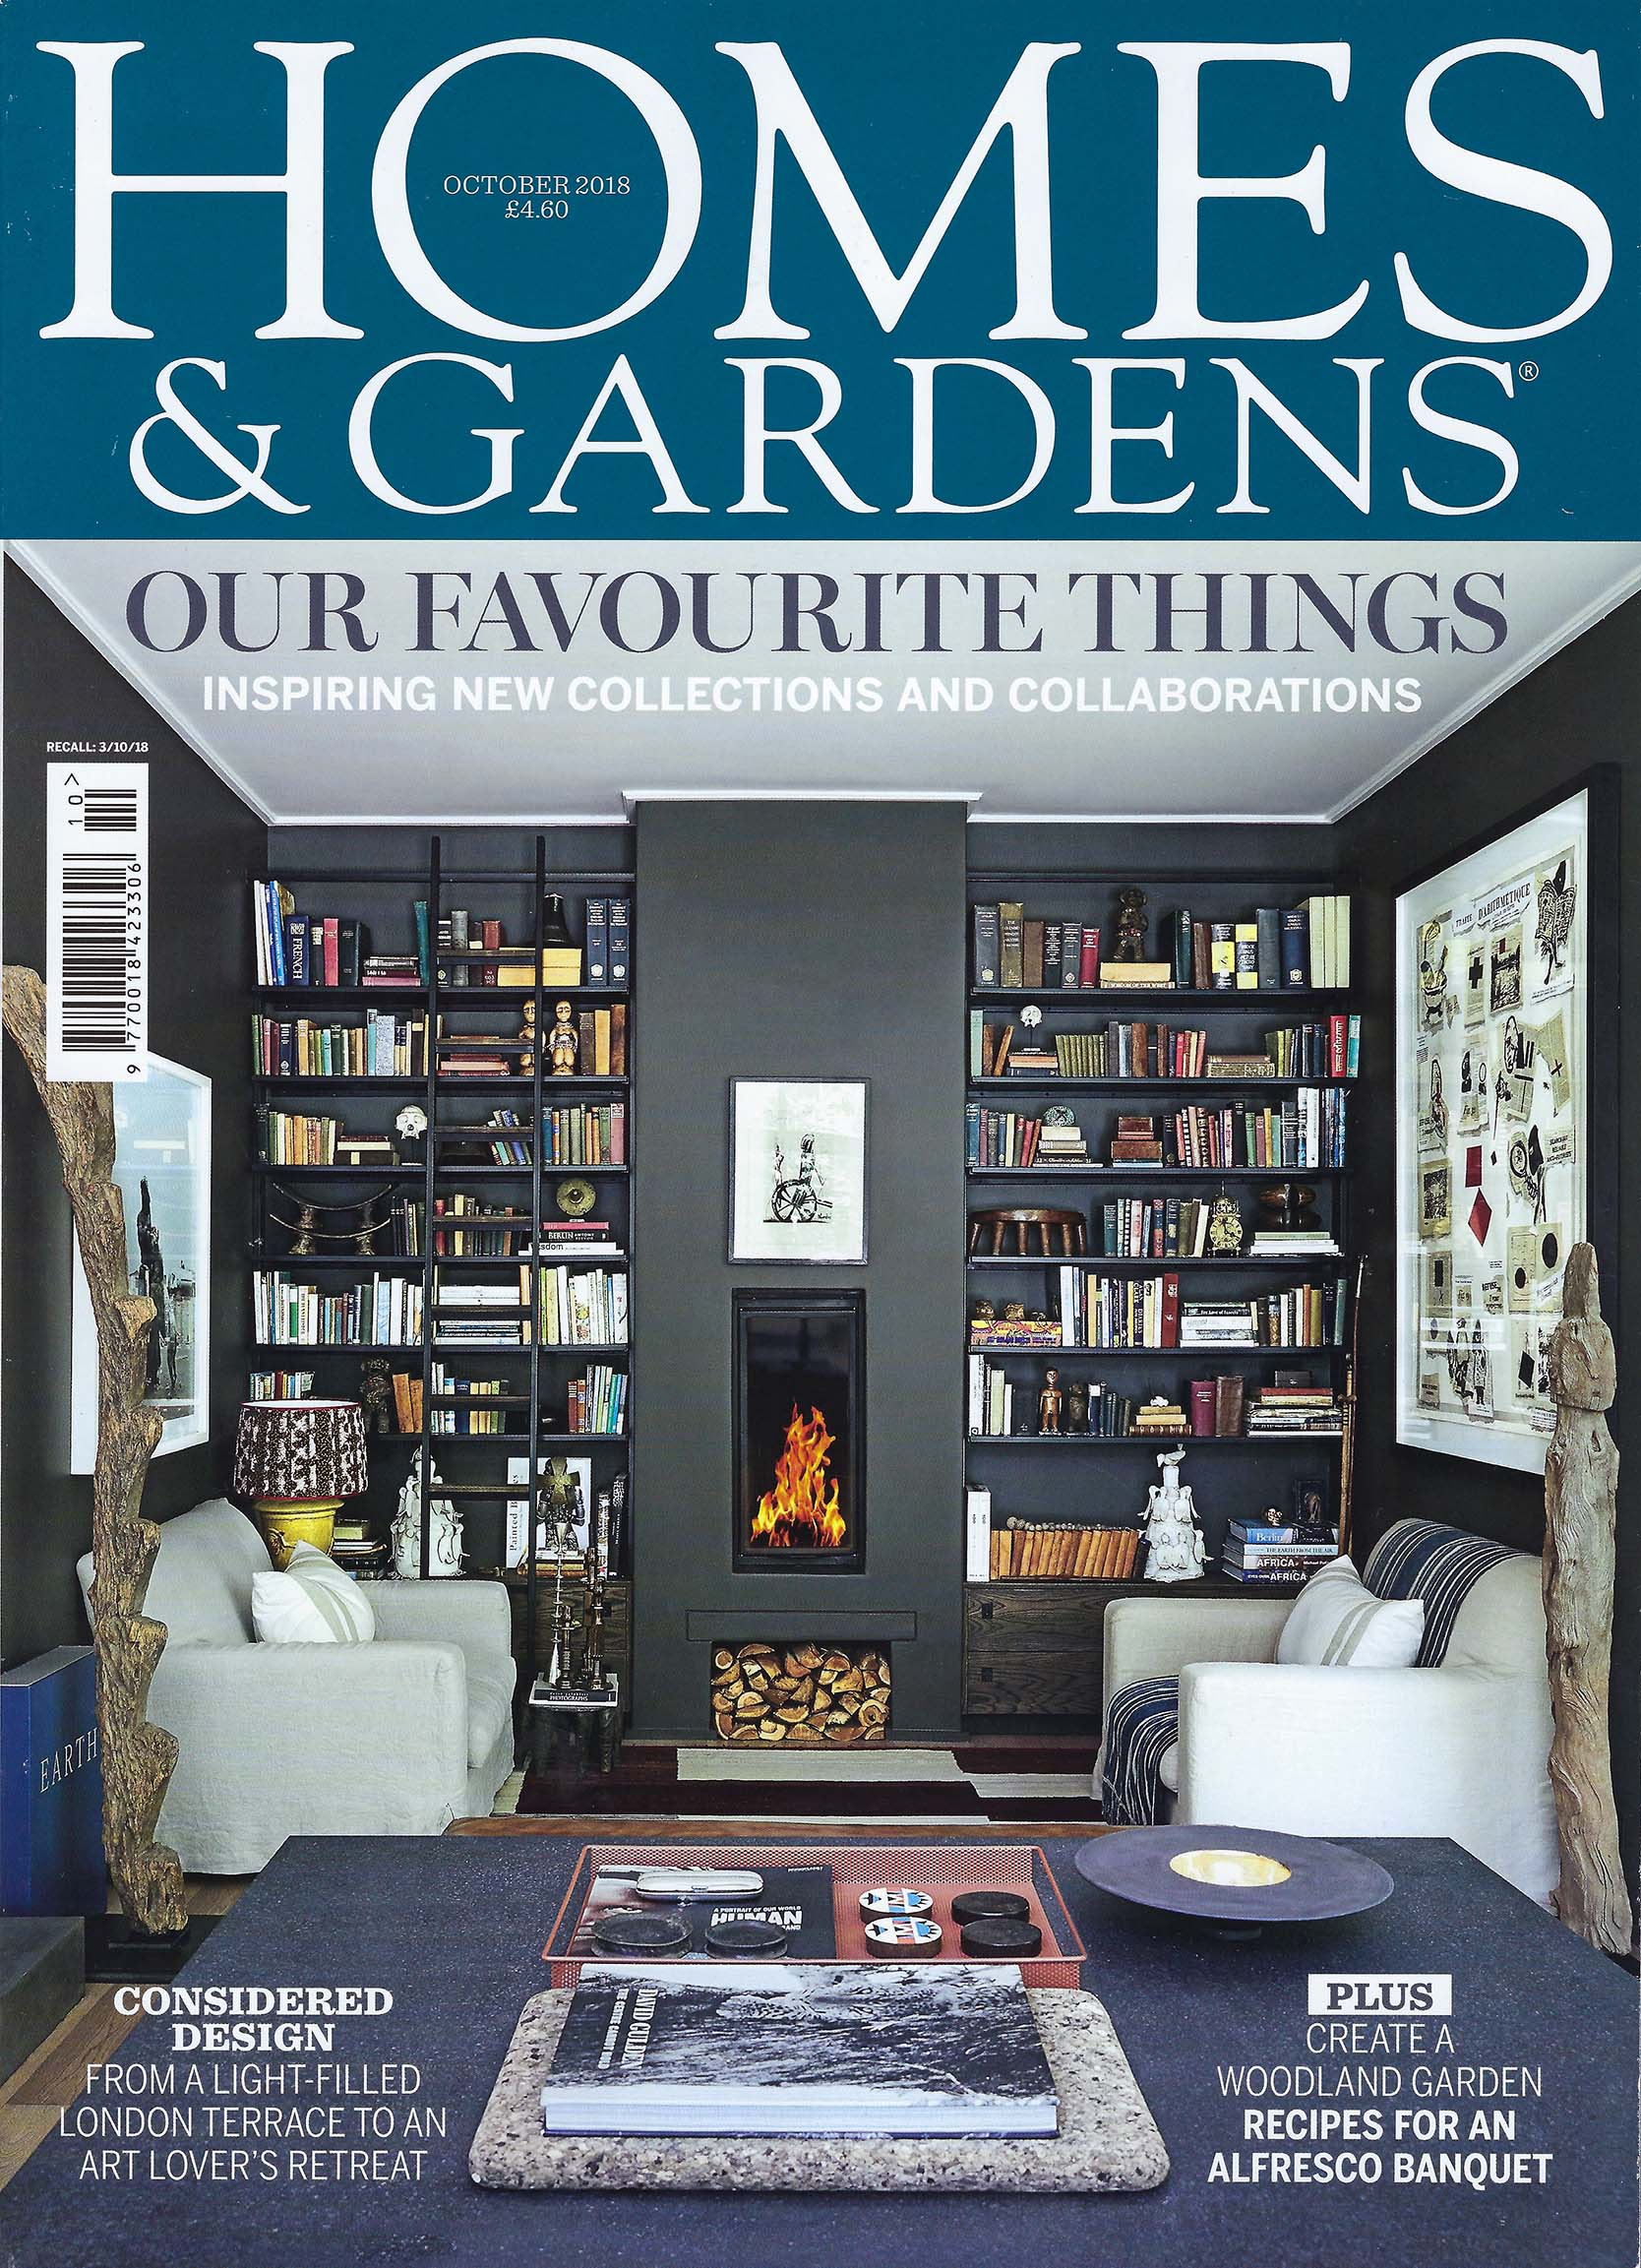 Homes & Gardens October 2018 .jpeg